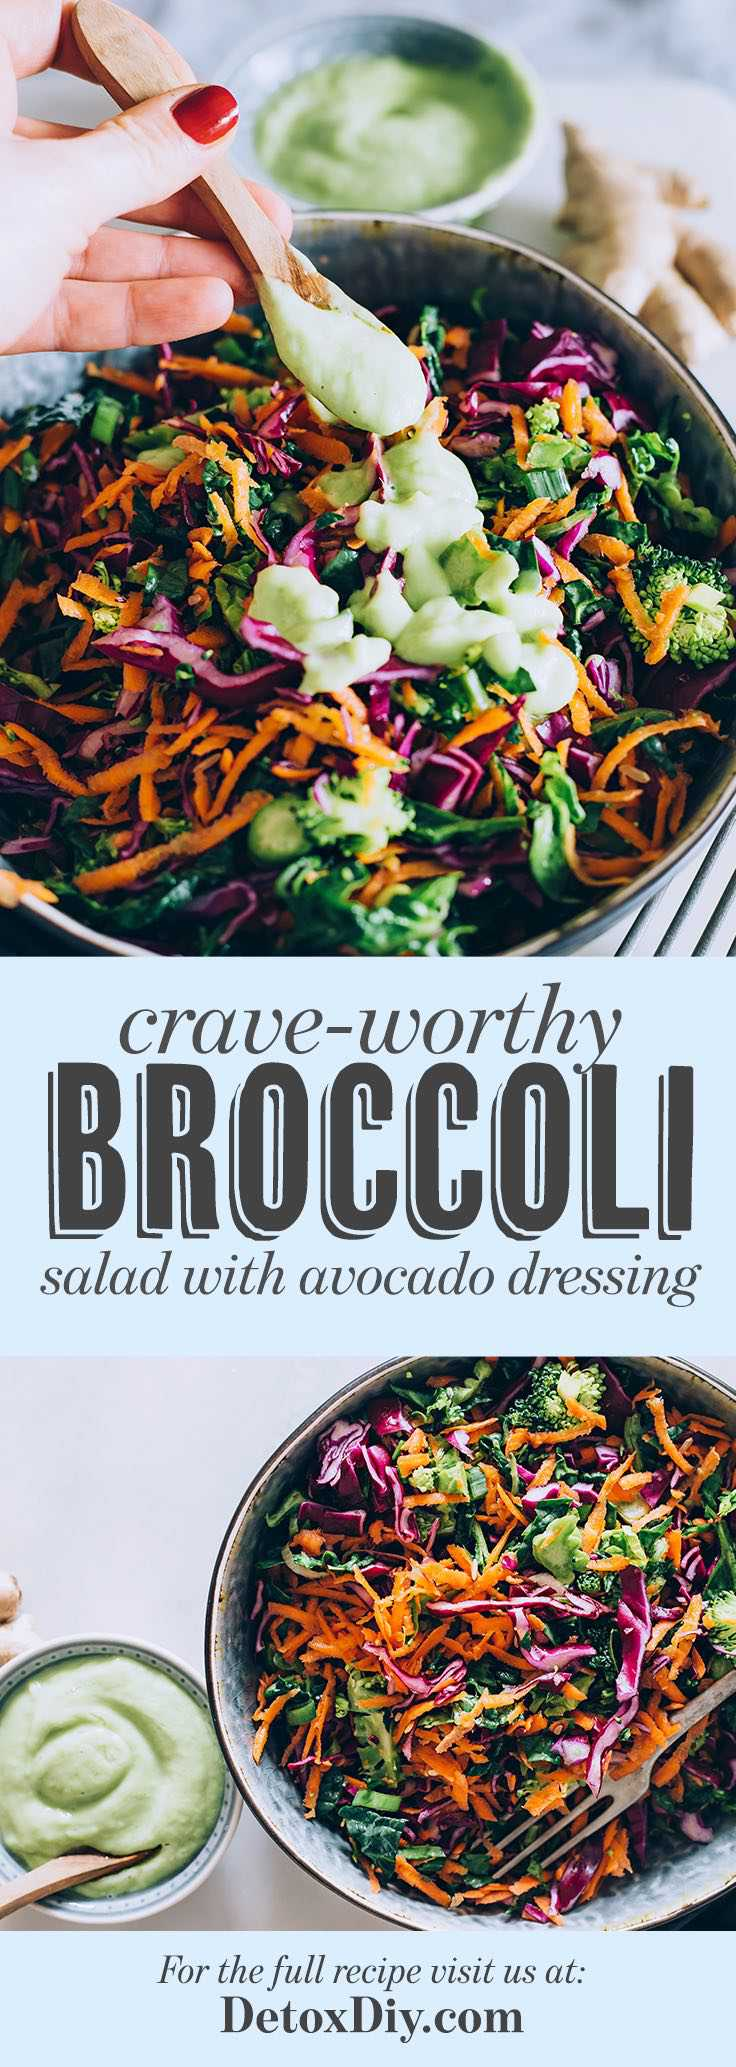 This broccoli salad with homemade avocado dressing is the best!